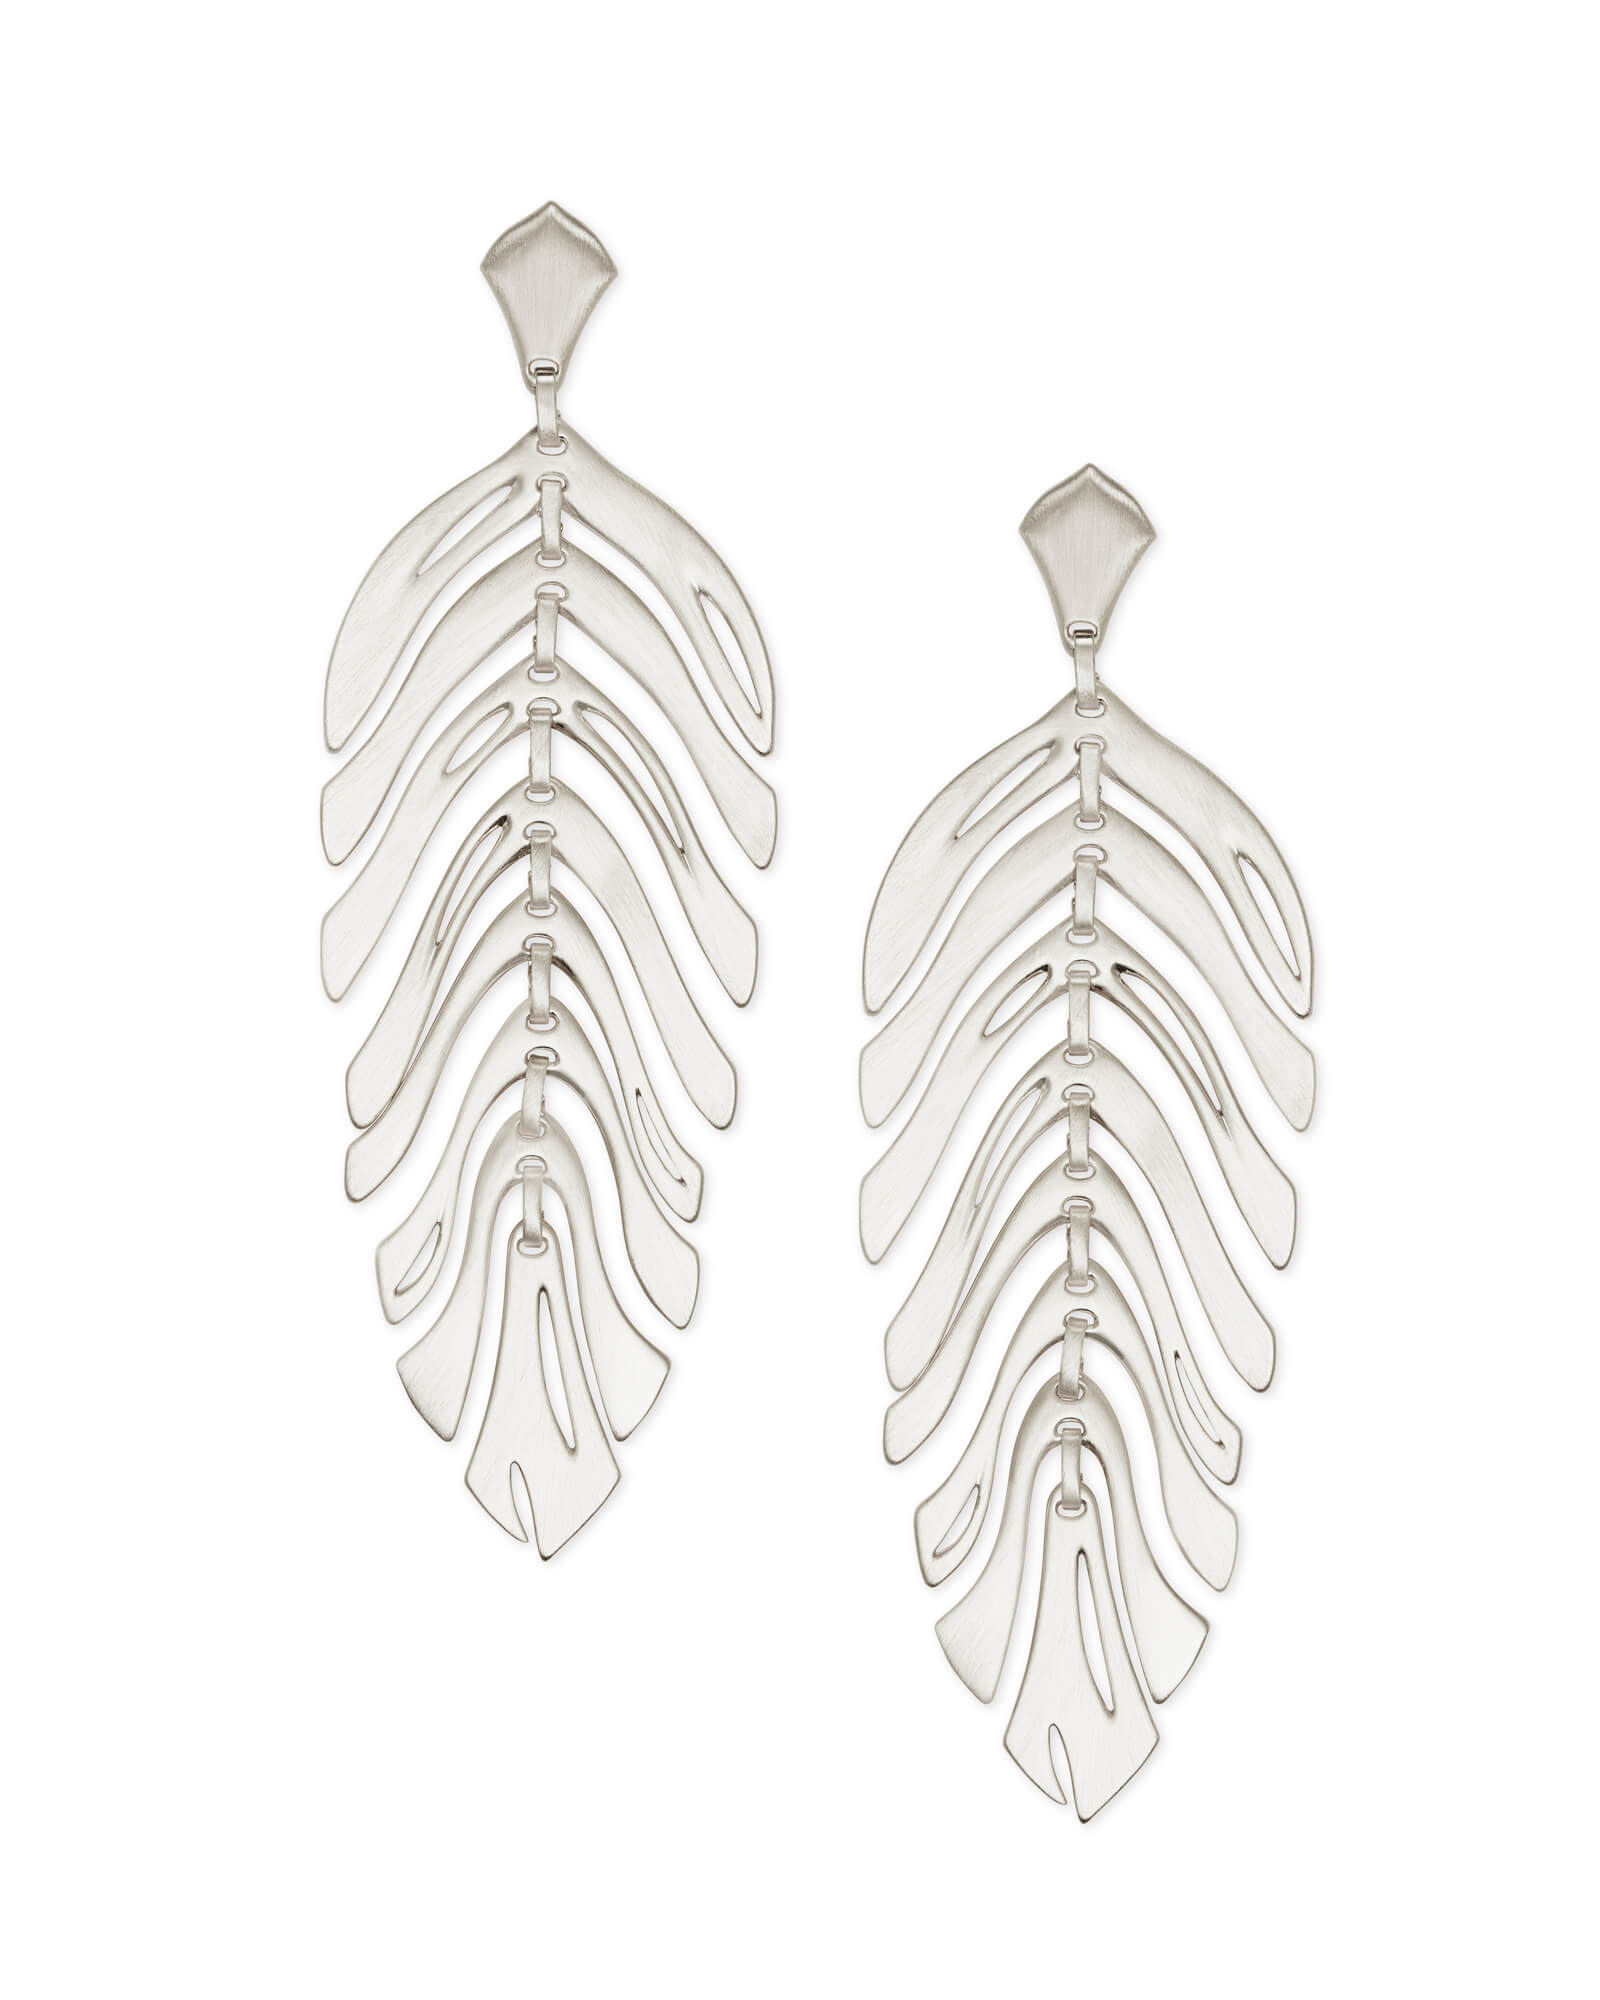 Lotus Statement Earrings in Silver | Kendra Scott